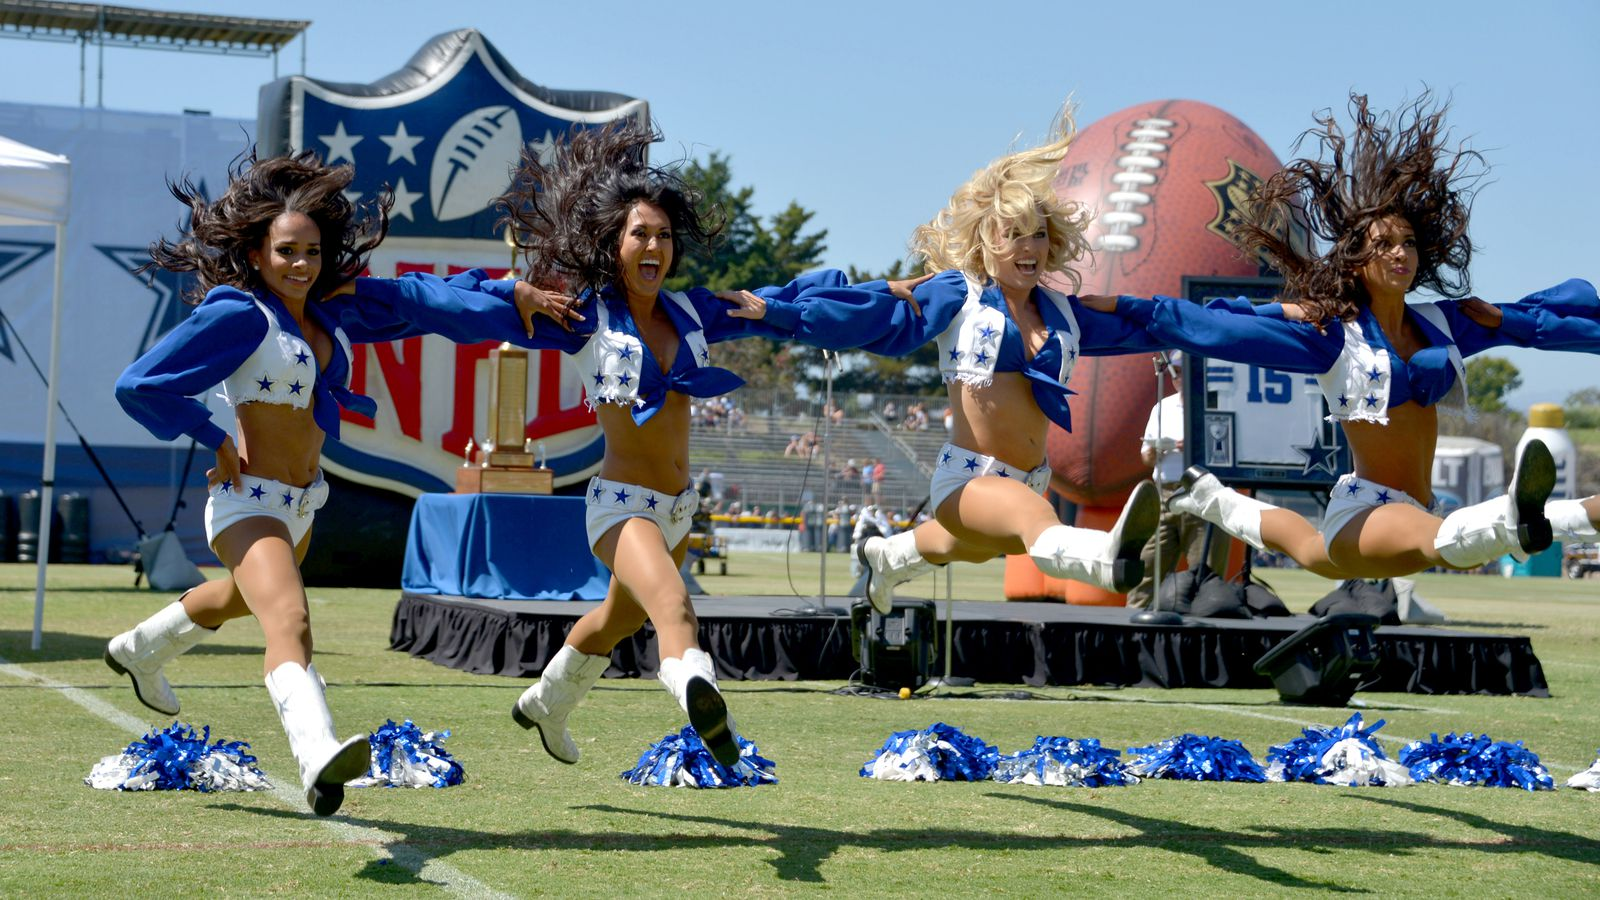 Print NFL Preseason Schedule for the 2018 Season List of NFL Preseason Games with Dates and Times Full NFL Preseason Schedule in pdf format